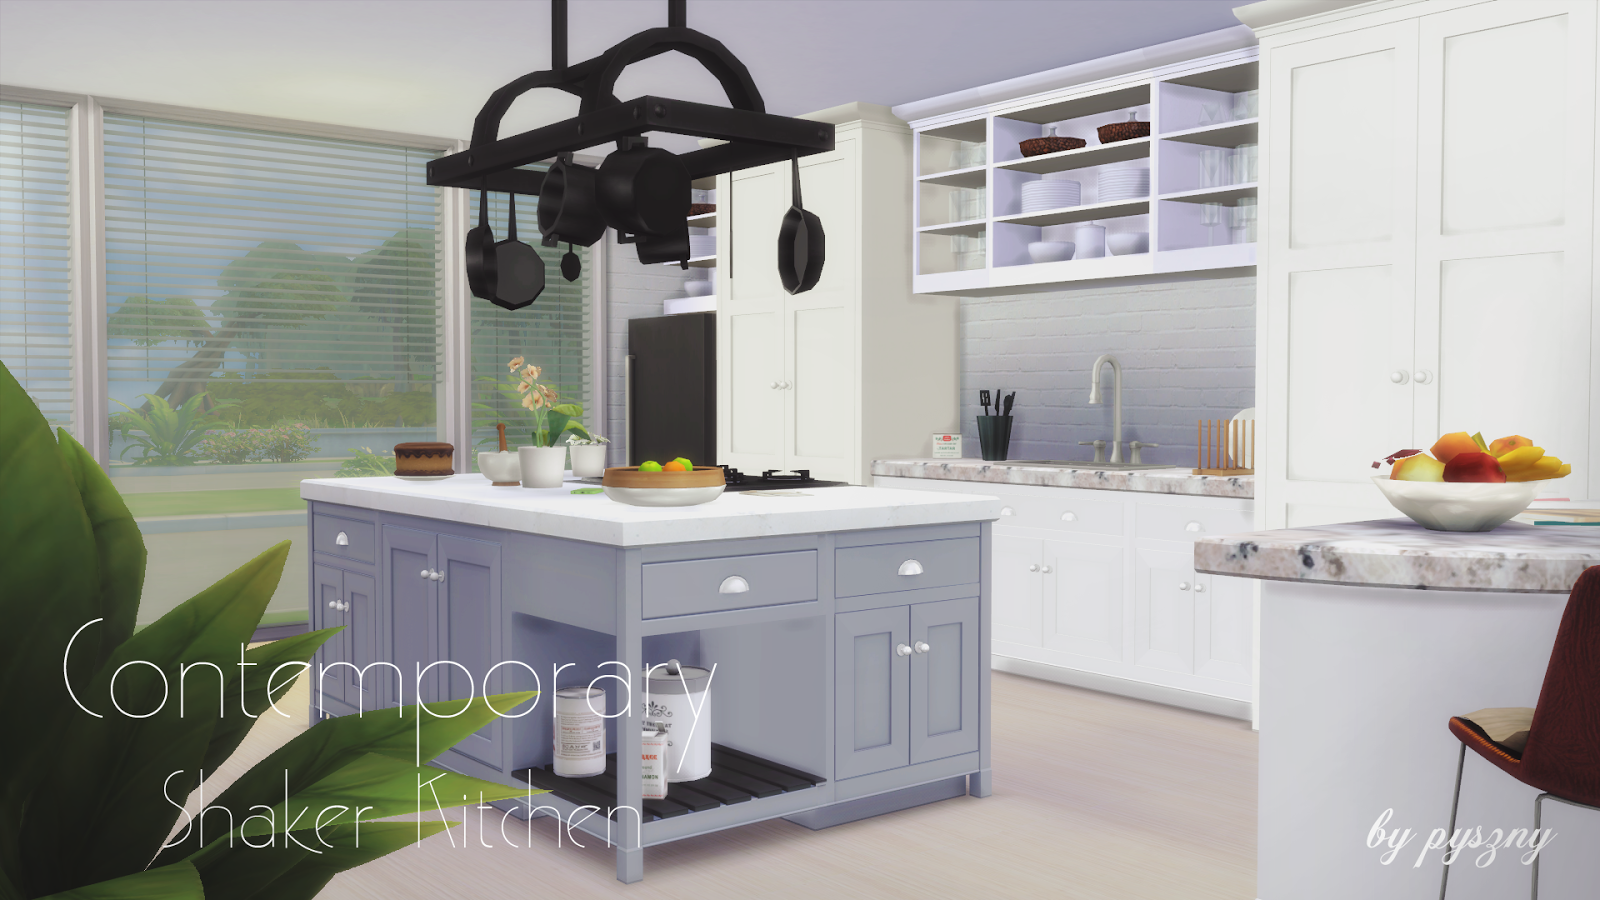 Contemporary shaker kitchen updated for Sims 3 kitchen designs